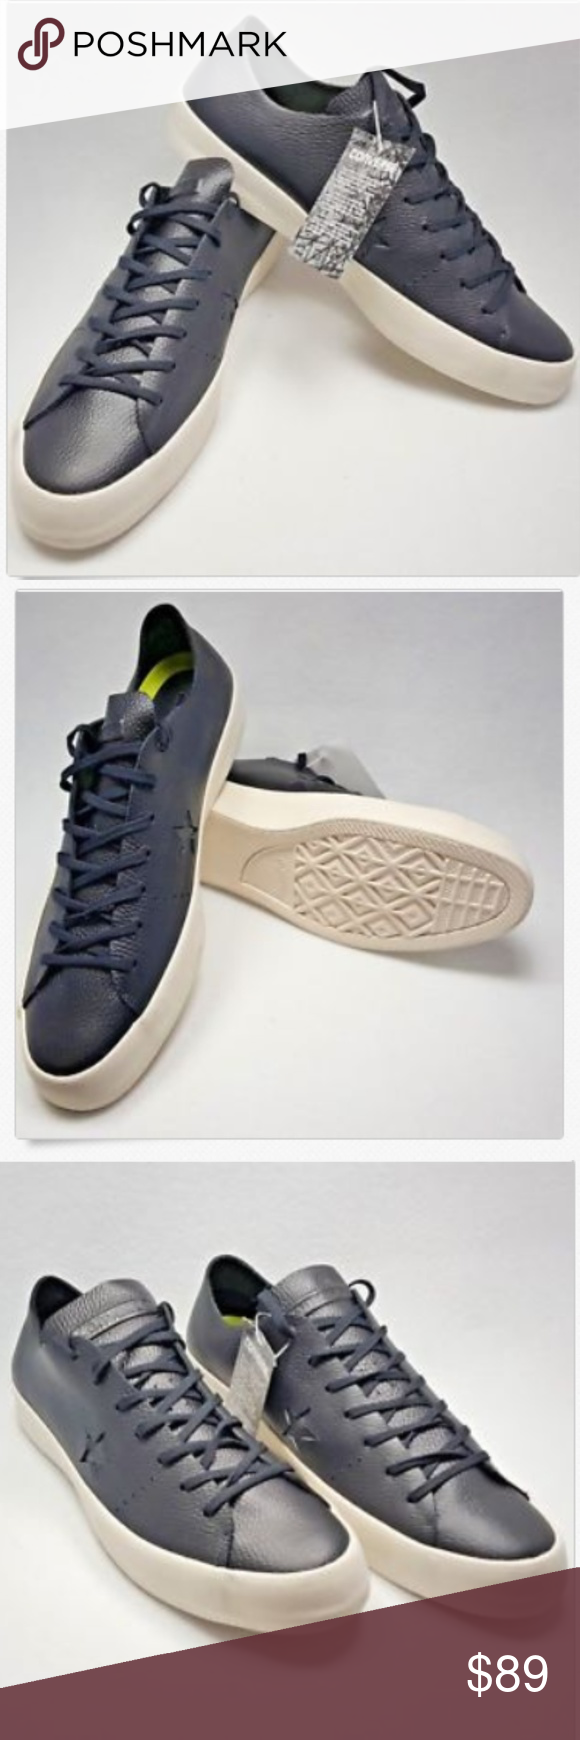 e9bb2f4a8266 Converse Men s 154838C One Star Prime Low Top  Brand New